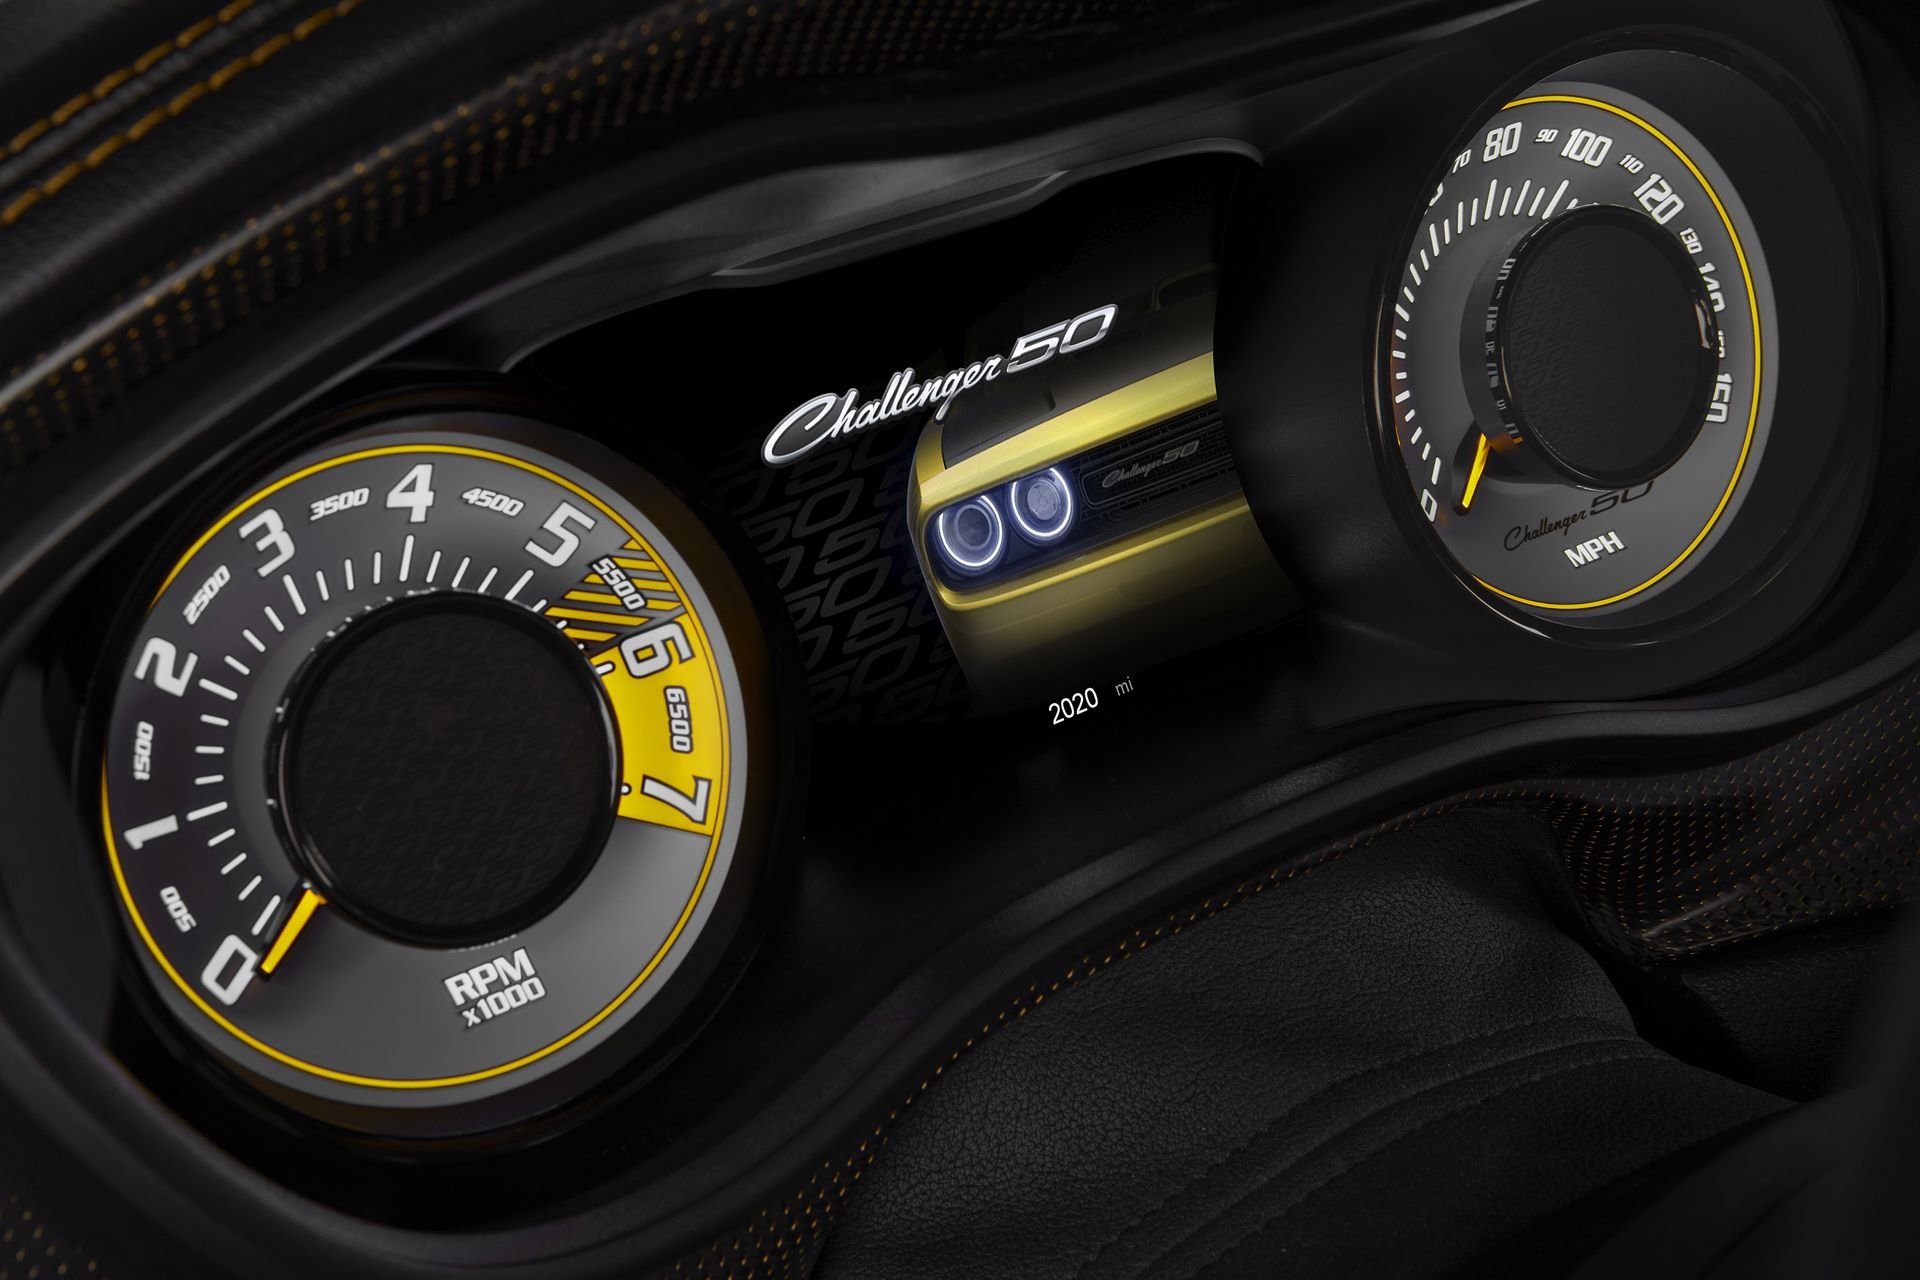 The 50th Anniversary Edition features a startup animation on the Electronic Vehicle Information Center (EVIC) screen that showcases the 2020 Challenger and unique white-faced gauges with yellow accents.